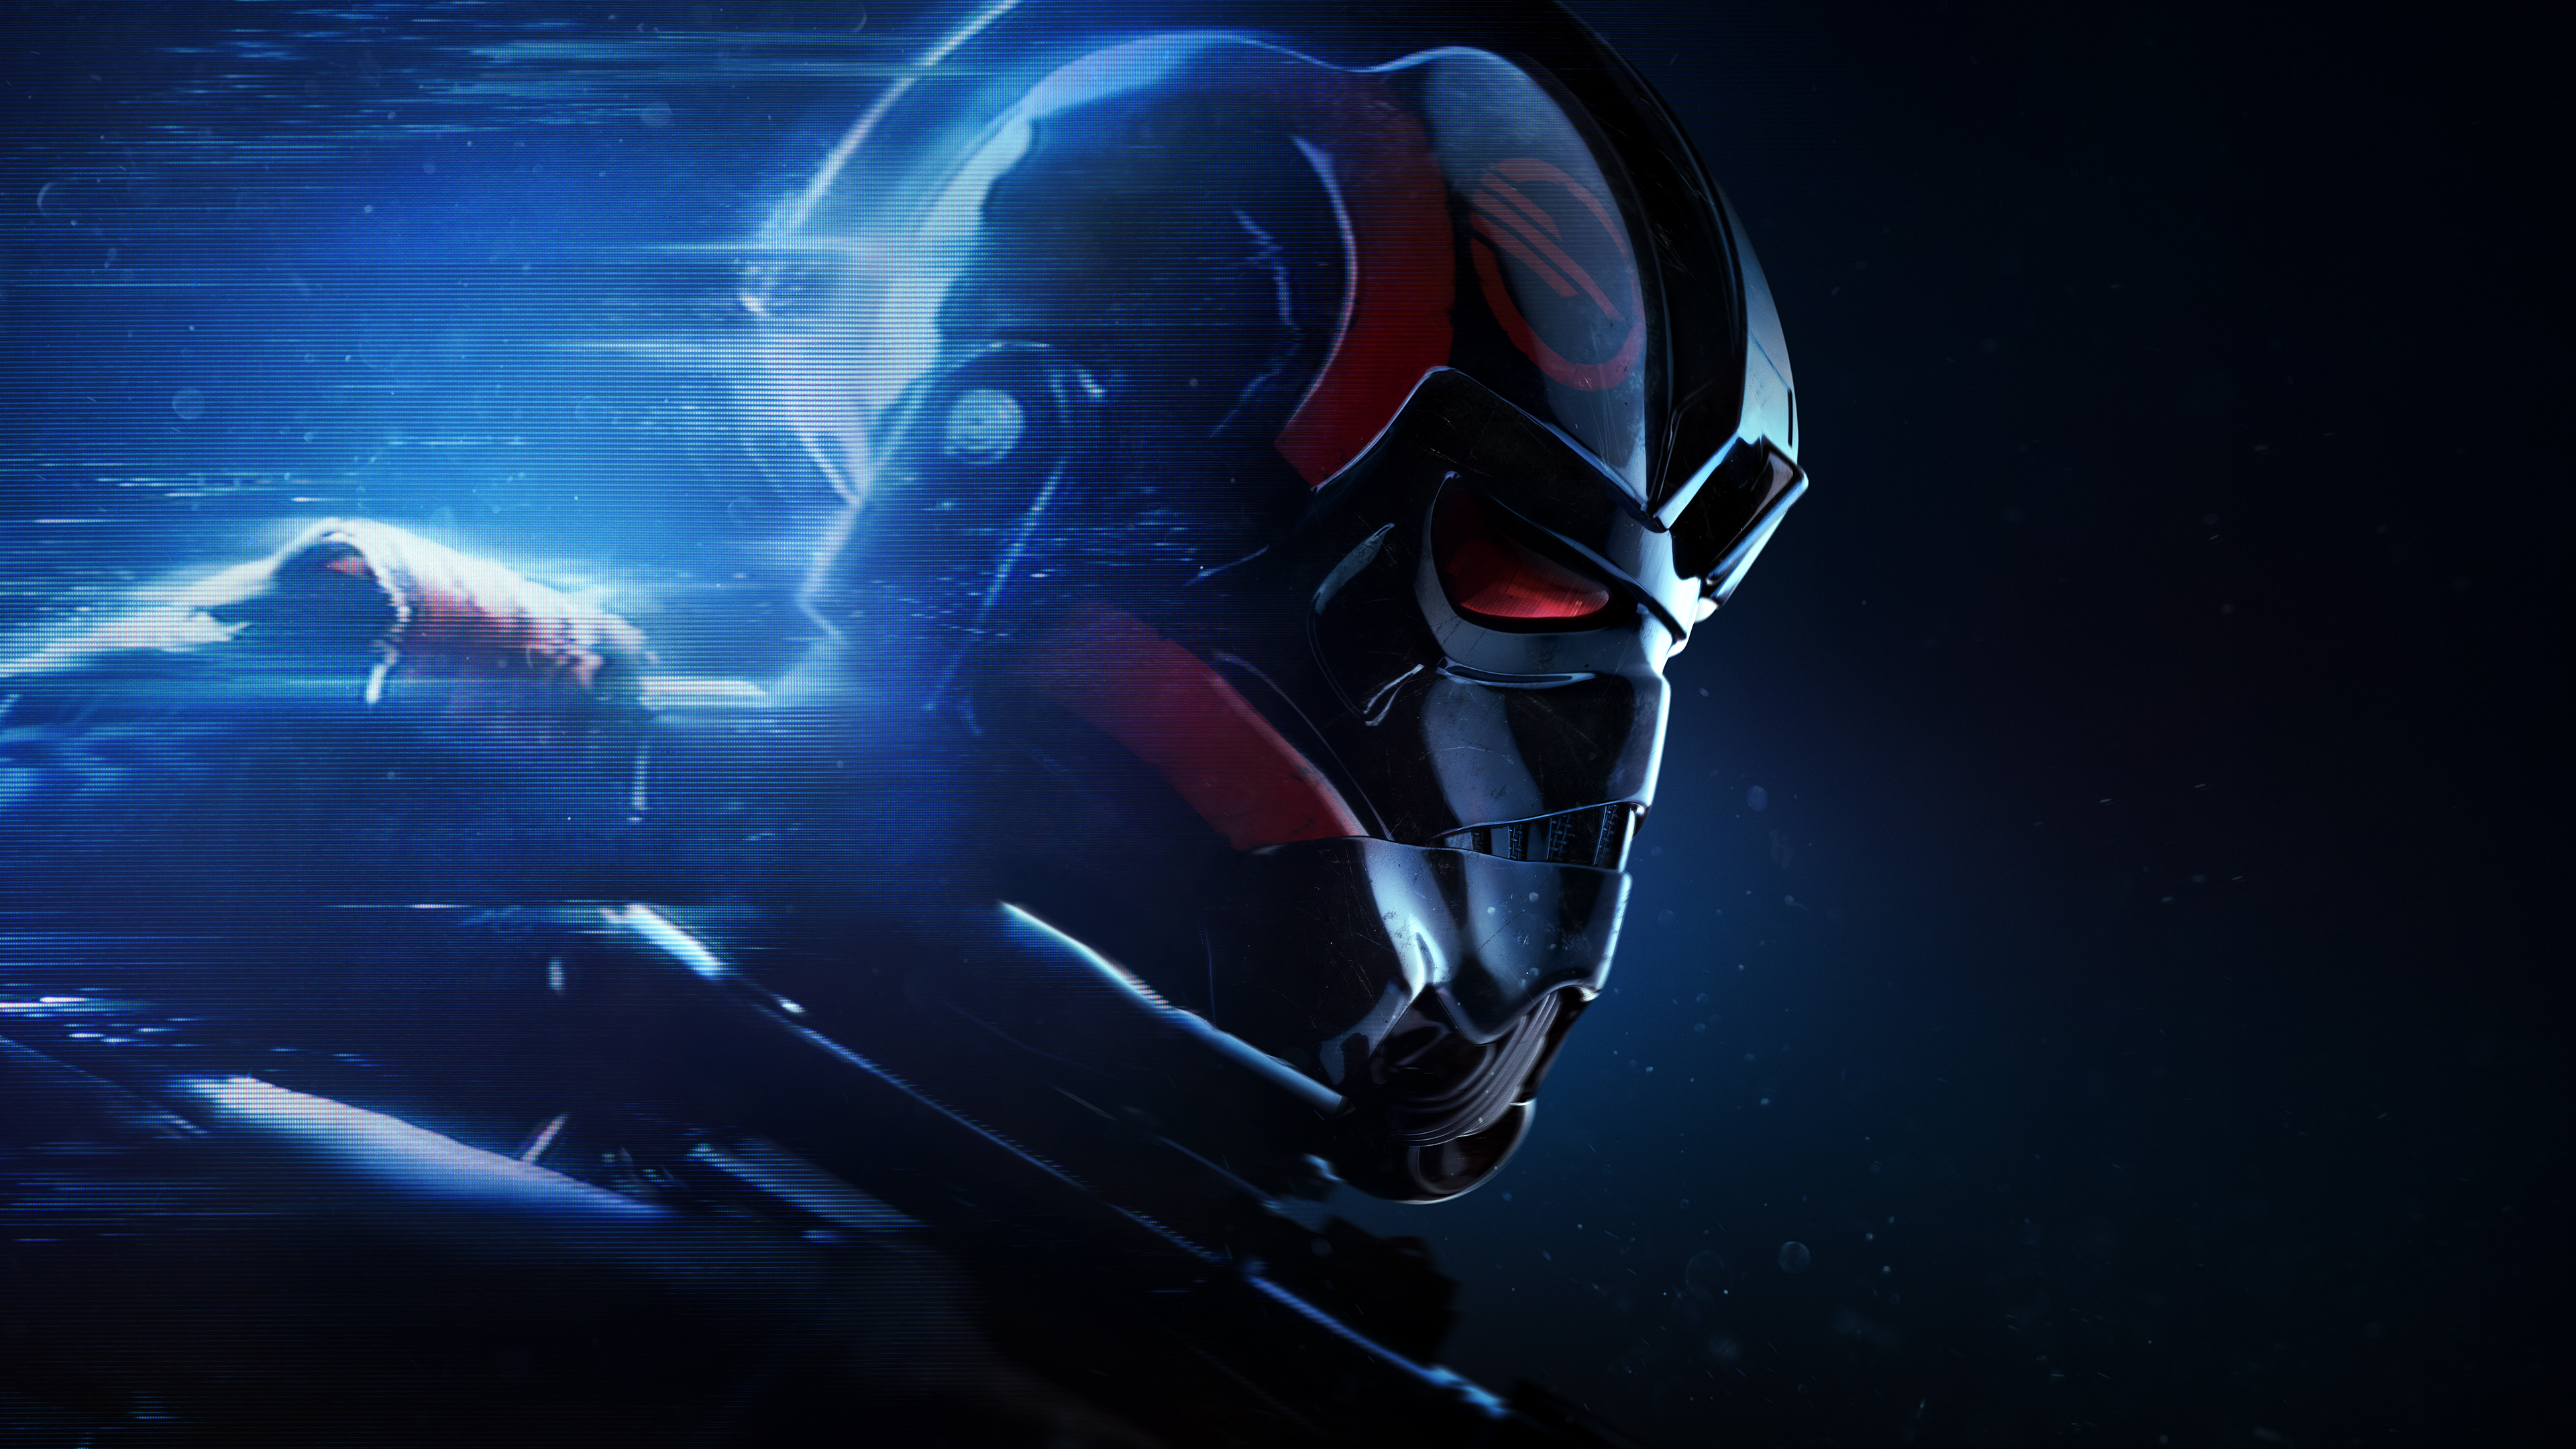 11 Star Wars Battlefront Ii Hd Wallpapers Background Images Wallpaper Abyss